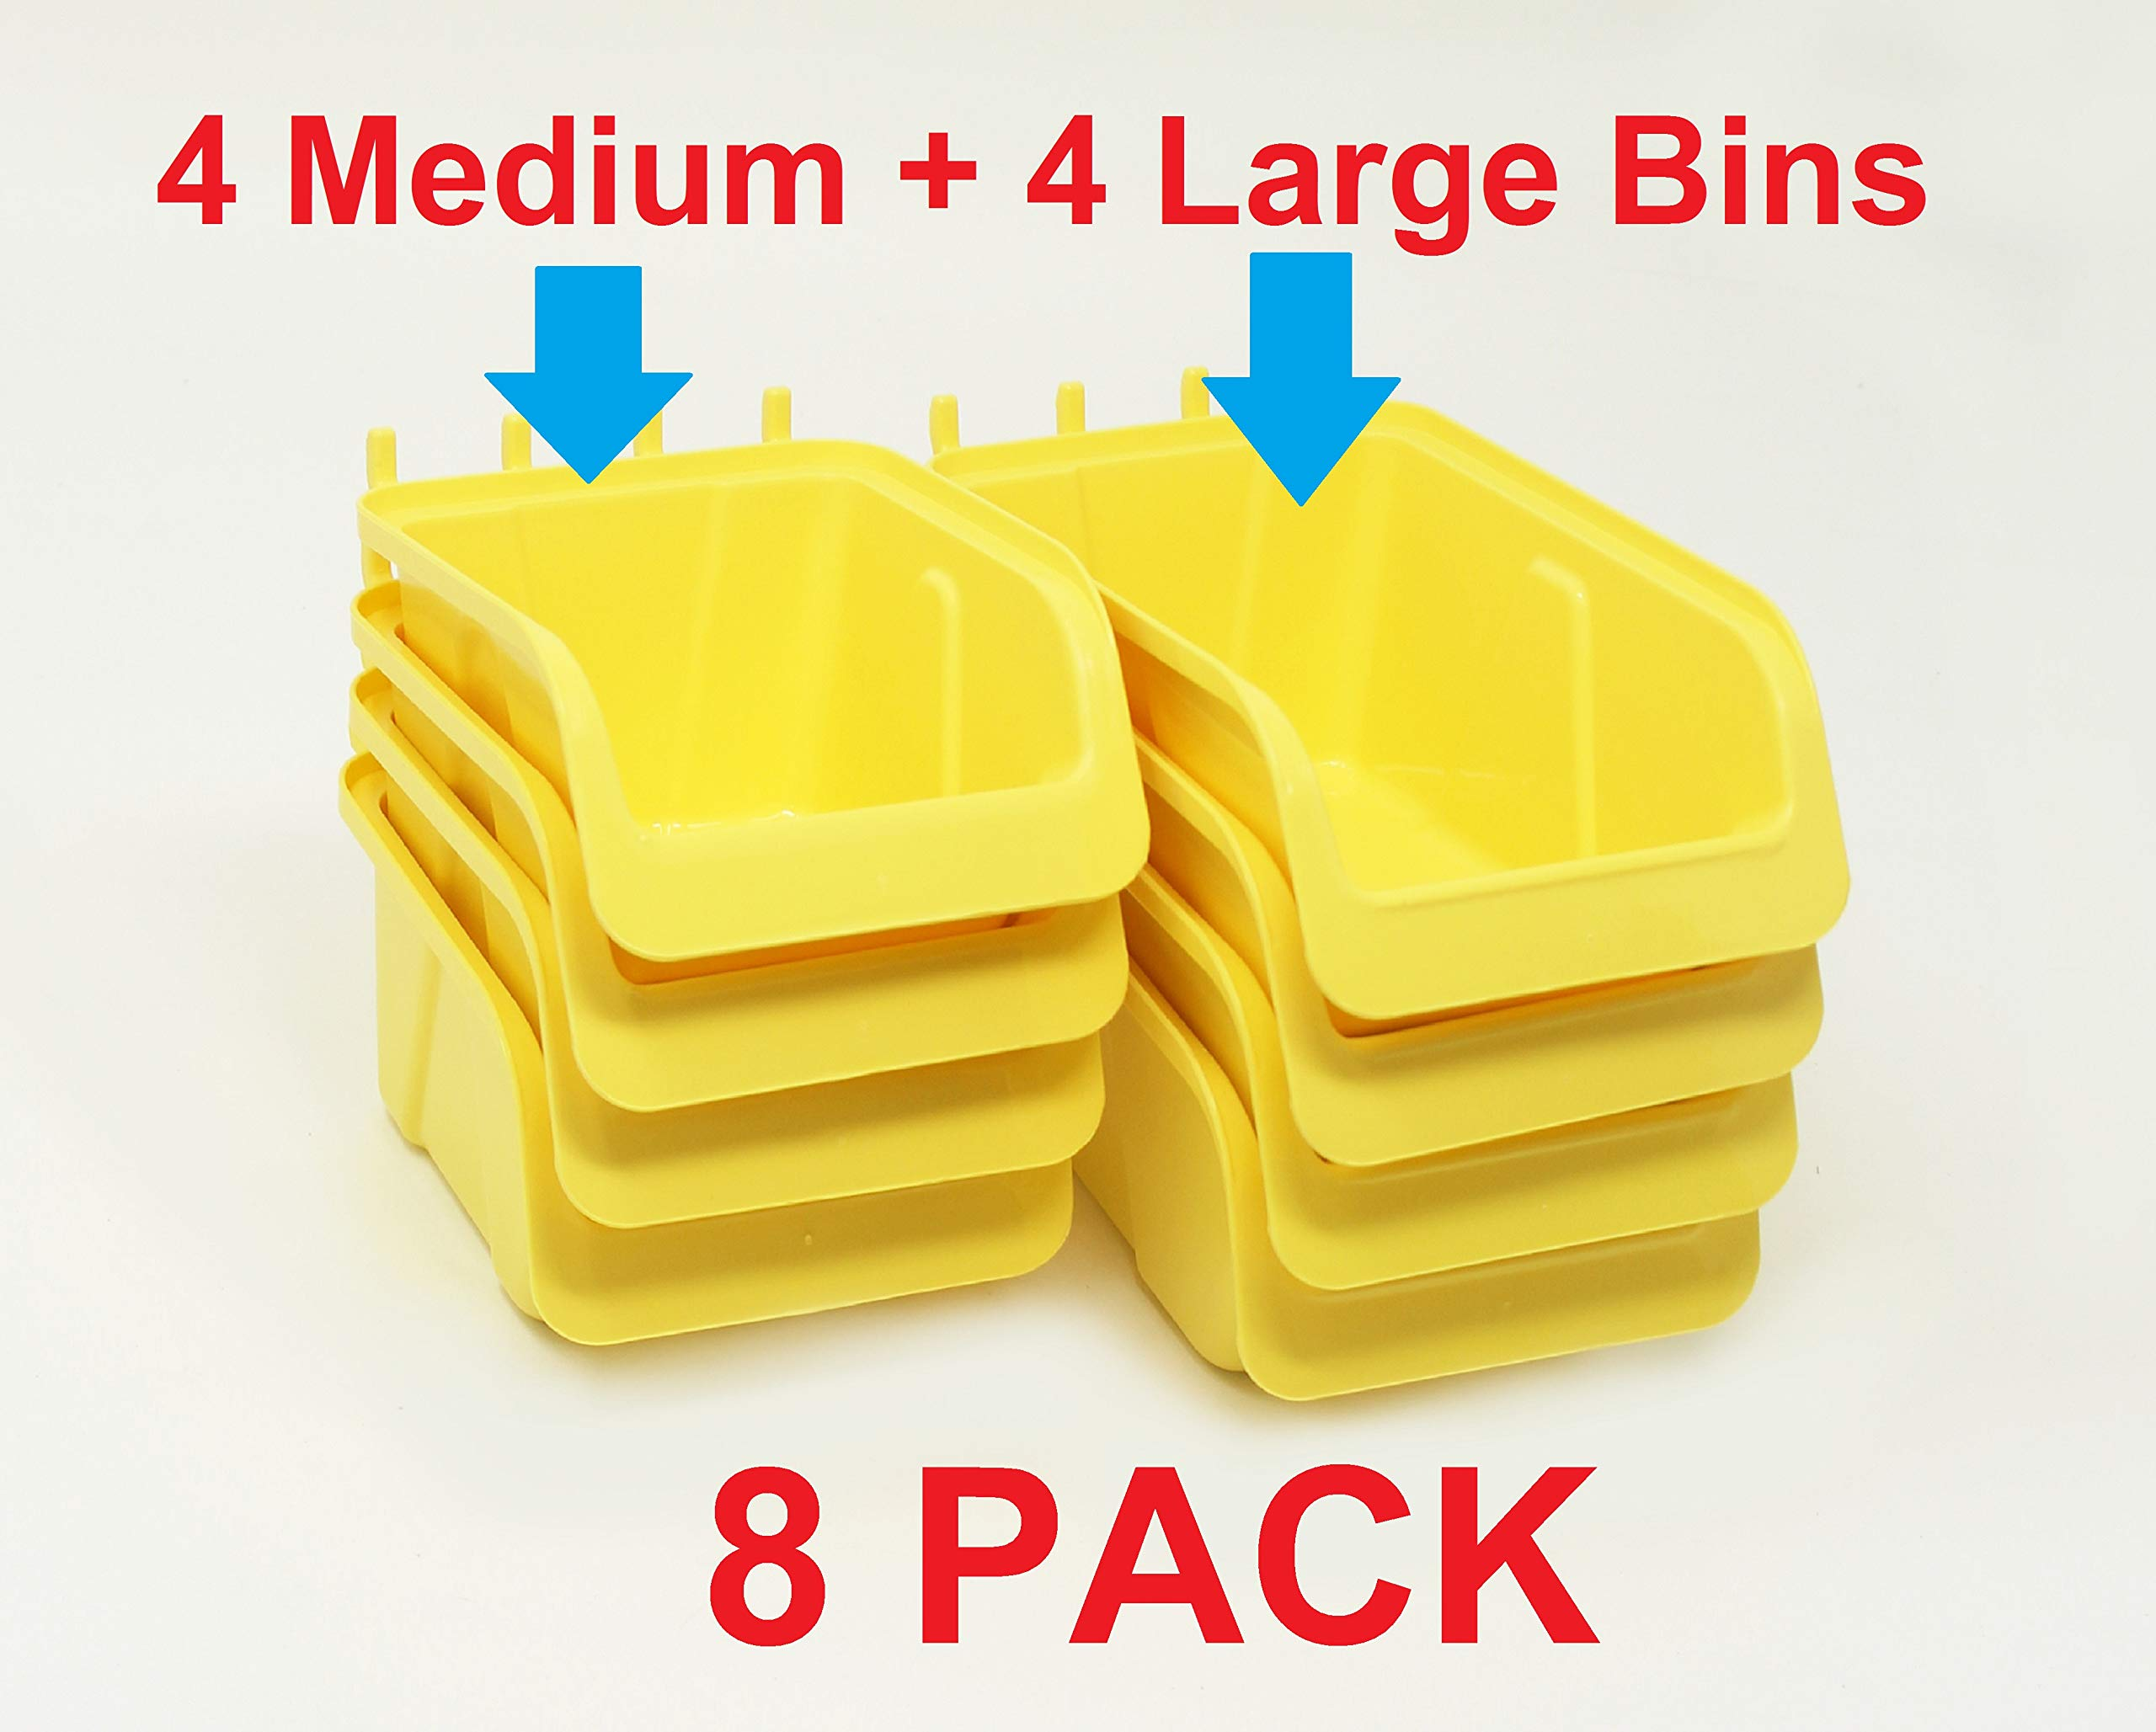 8 Pack Pegboard Bin Kit Parts Storage Craft Organizer Tool Workbench Accessories 4 Large and 4 Medium Bins